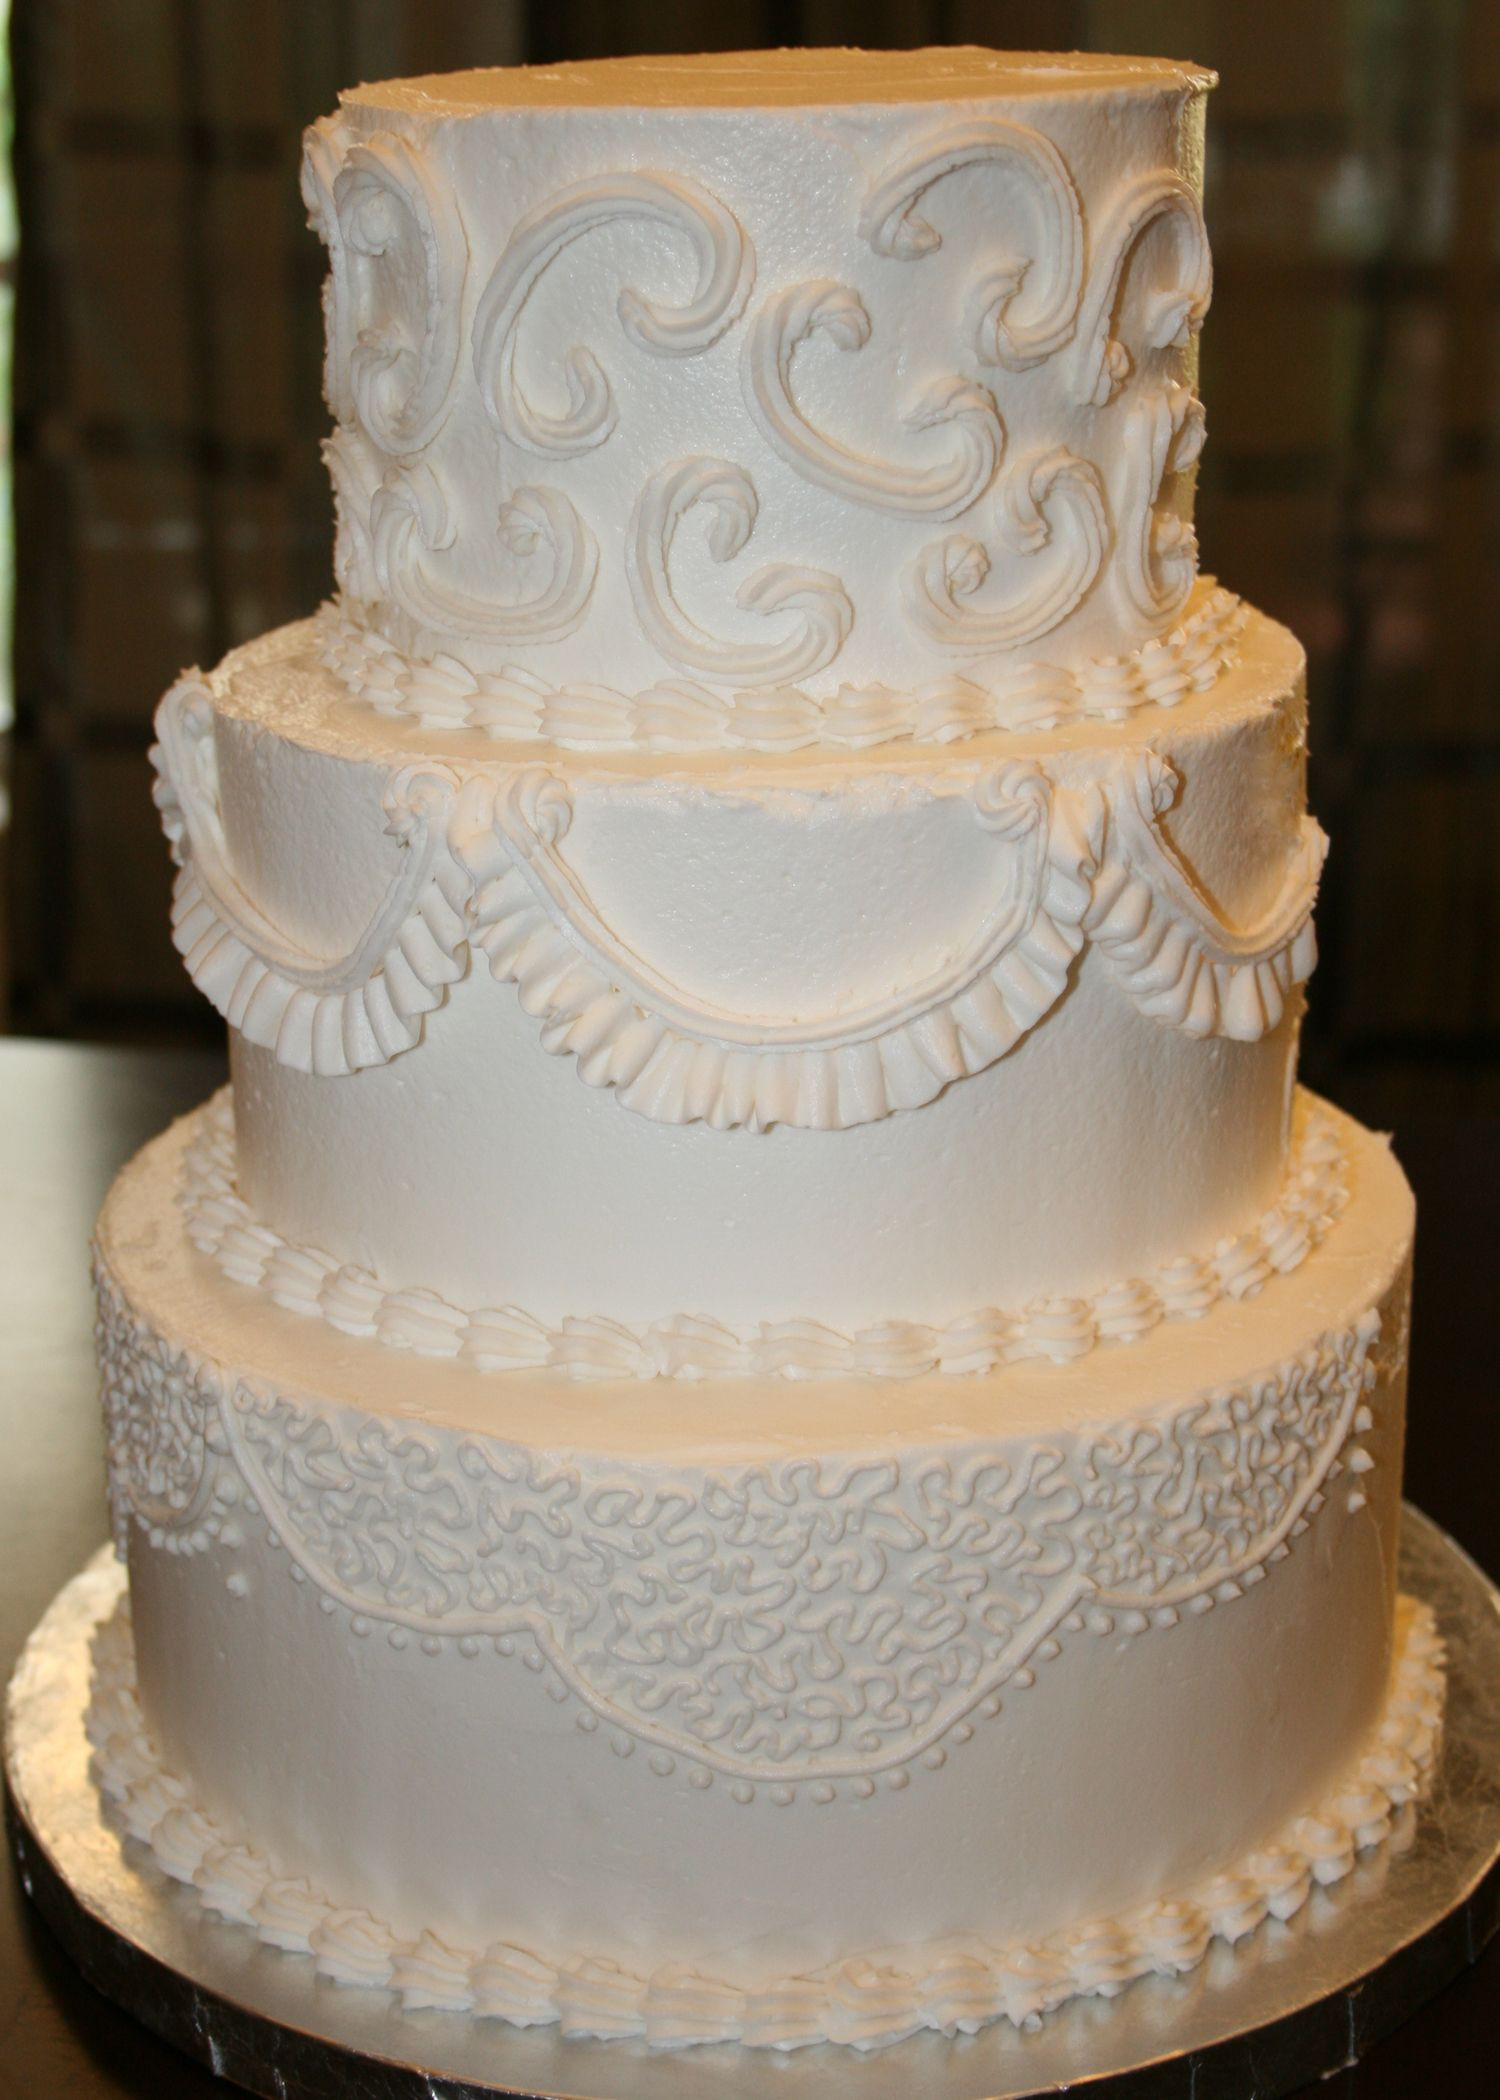 Wedding Cakes With Buttercream Frosting  buttercream frosting wedding cakes